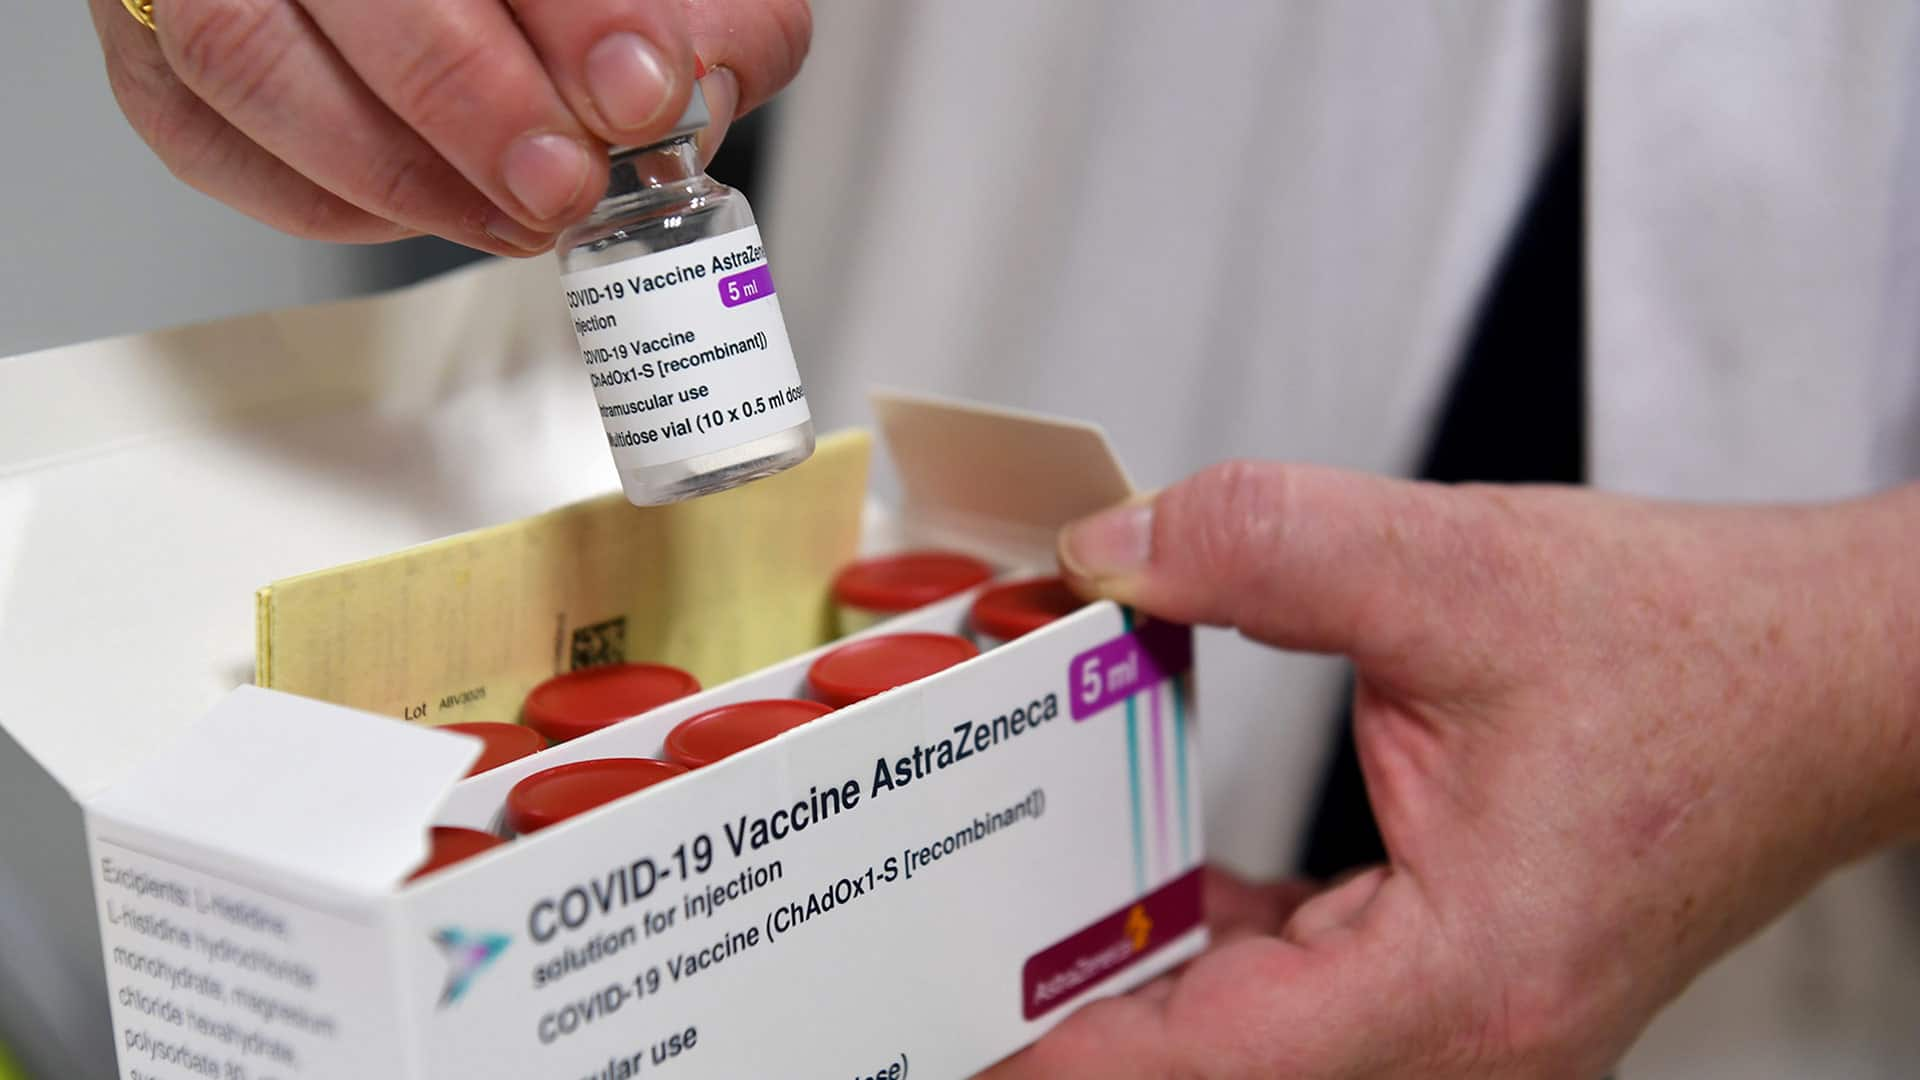 Pakistan to get 2.8 million AstraZeneca vaccine doses from COVAX